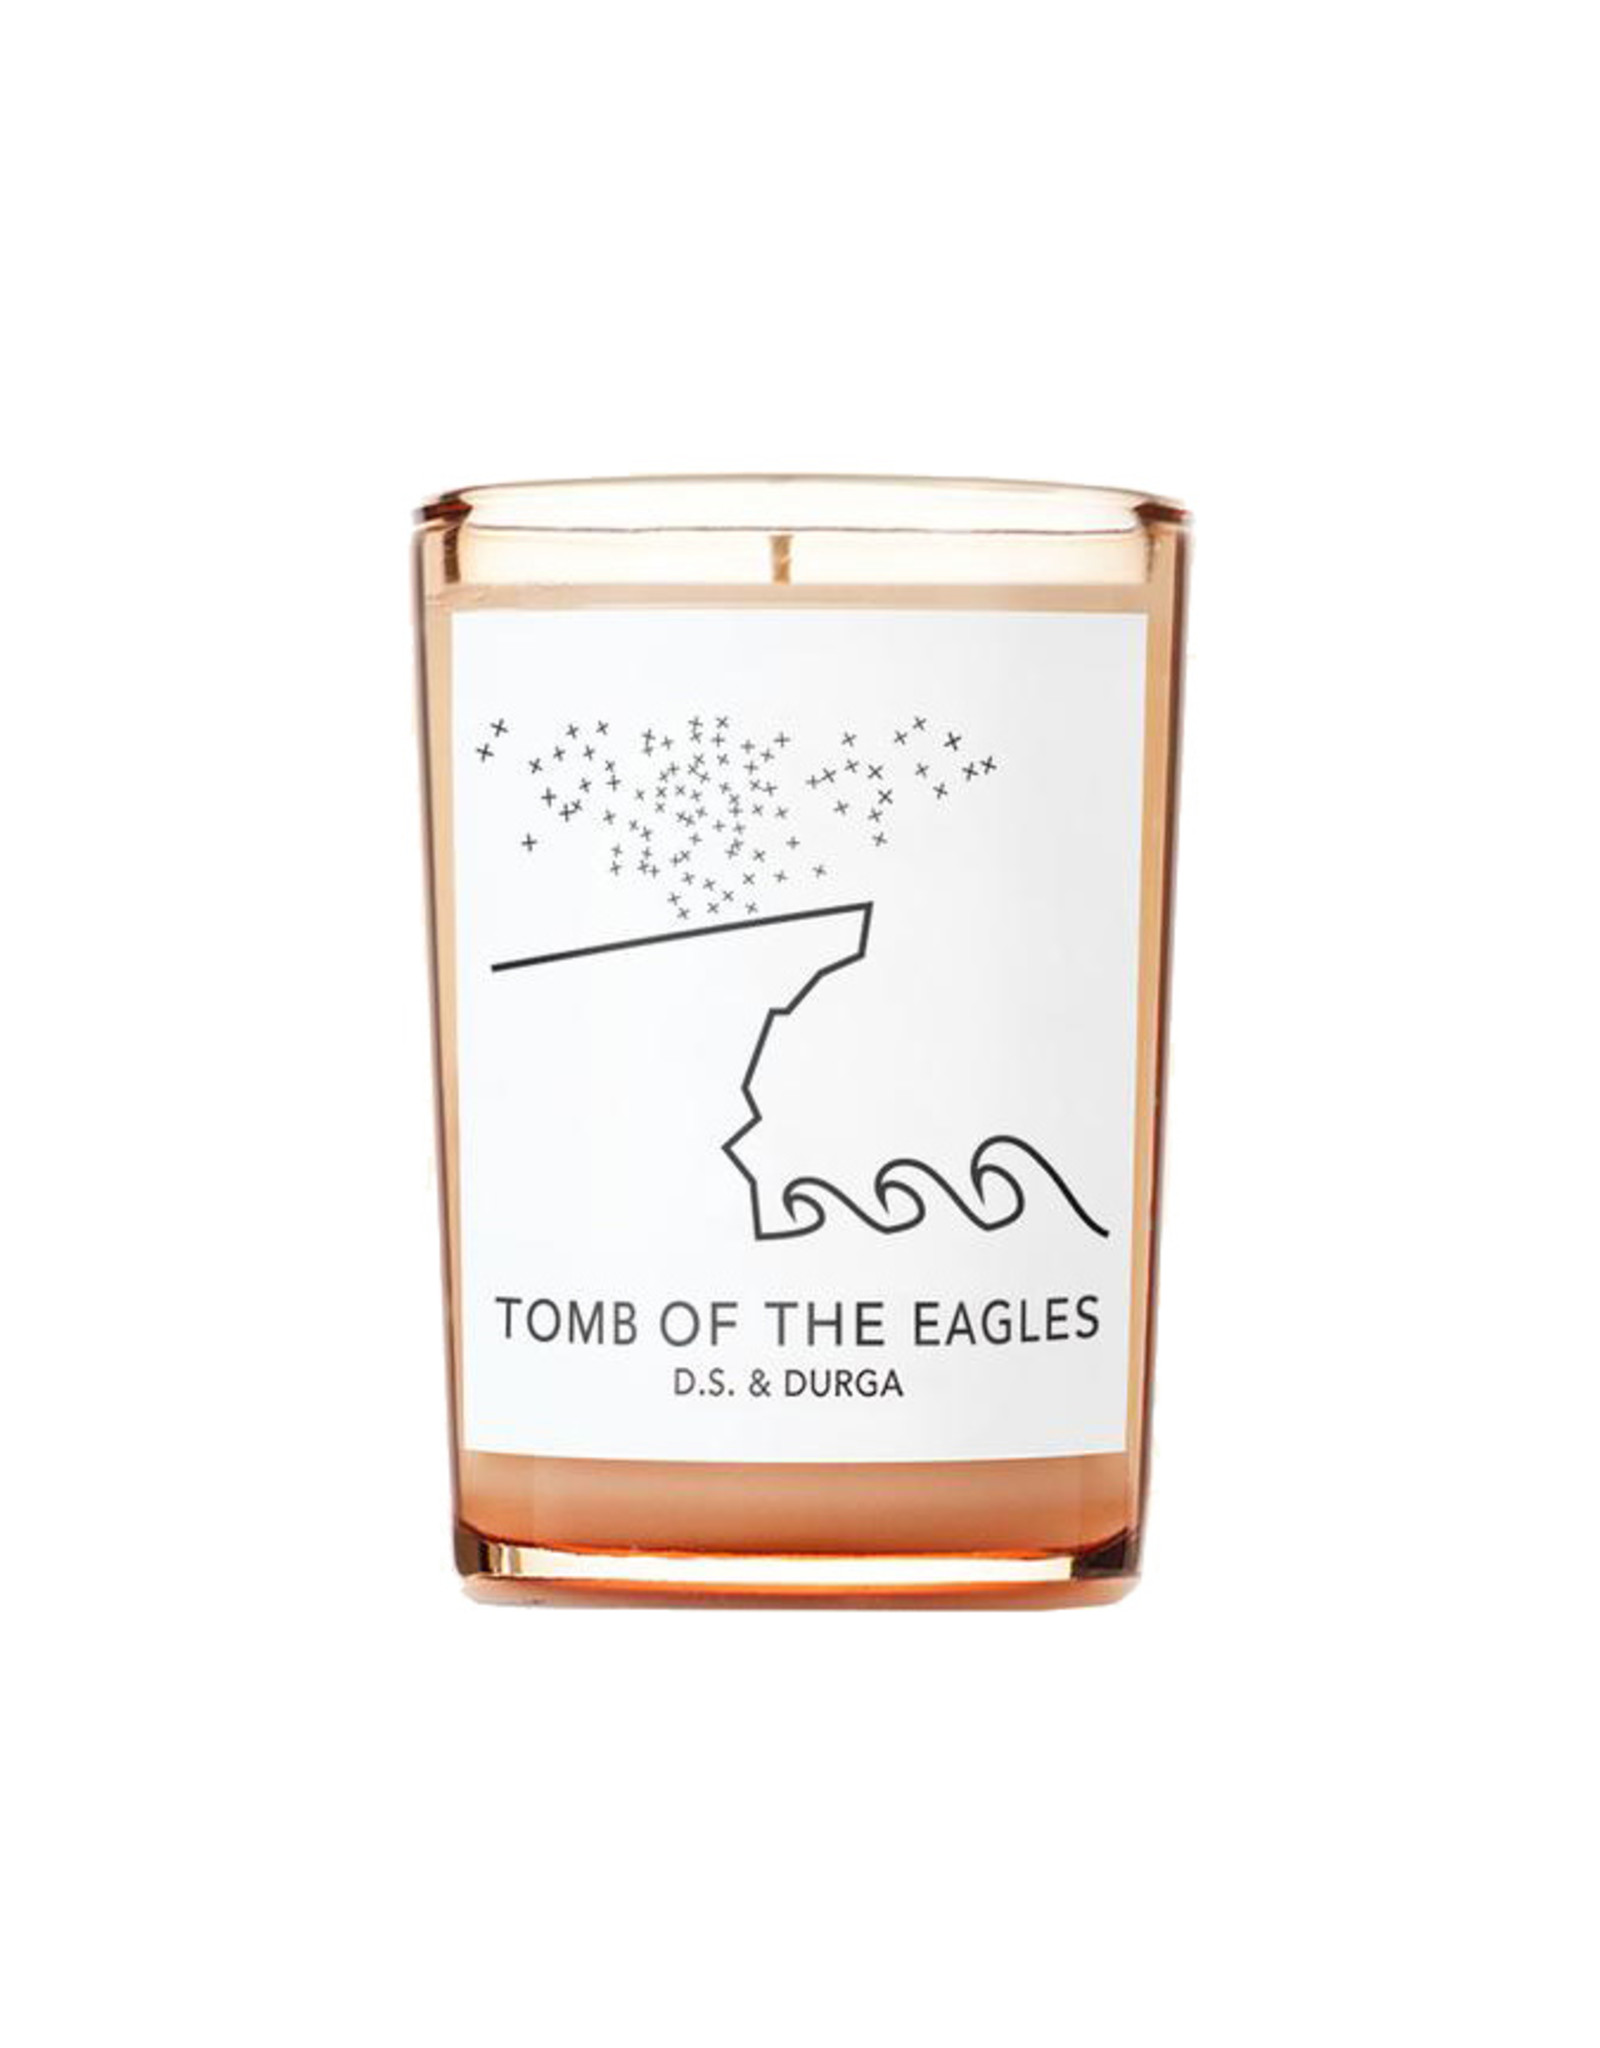 D.S. & DURGA Tomb of the Eagles - Candle - 7oz.